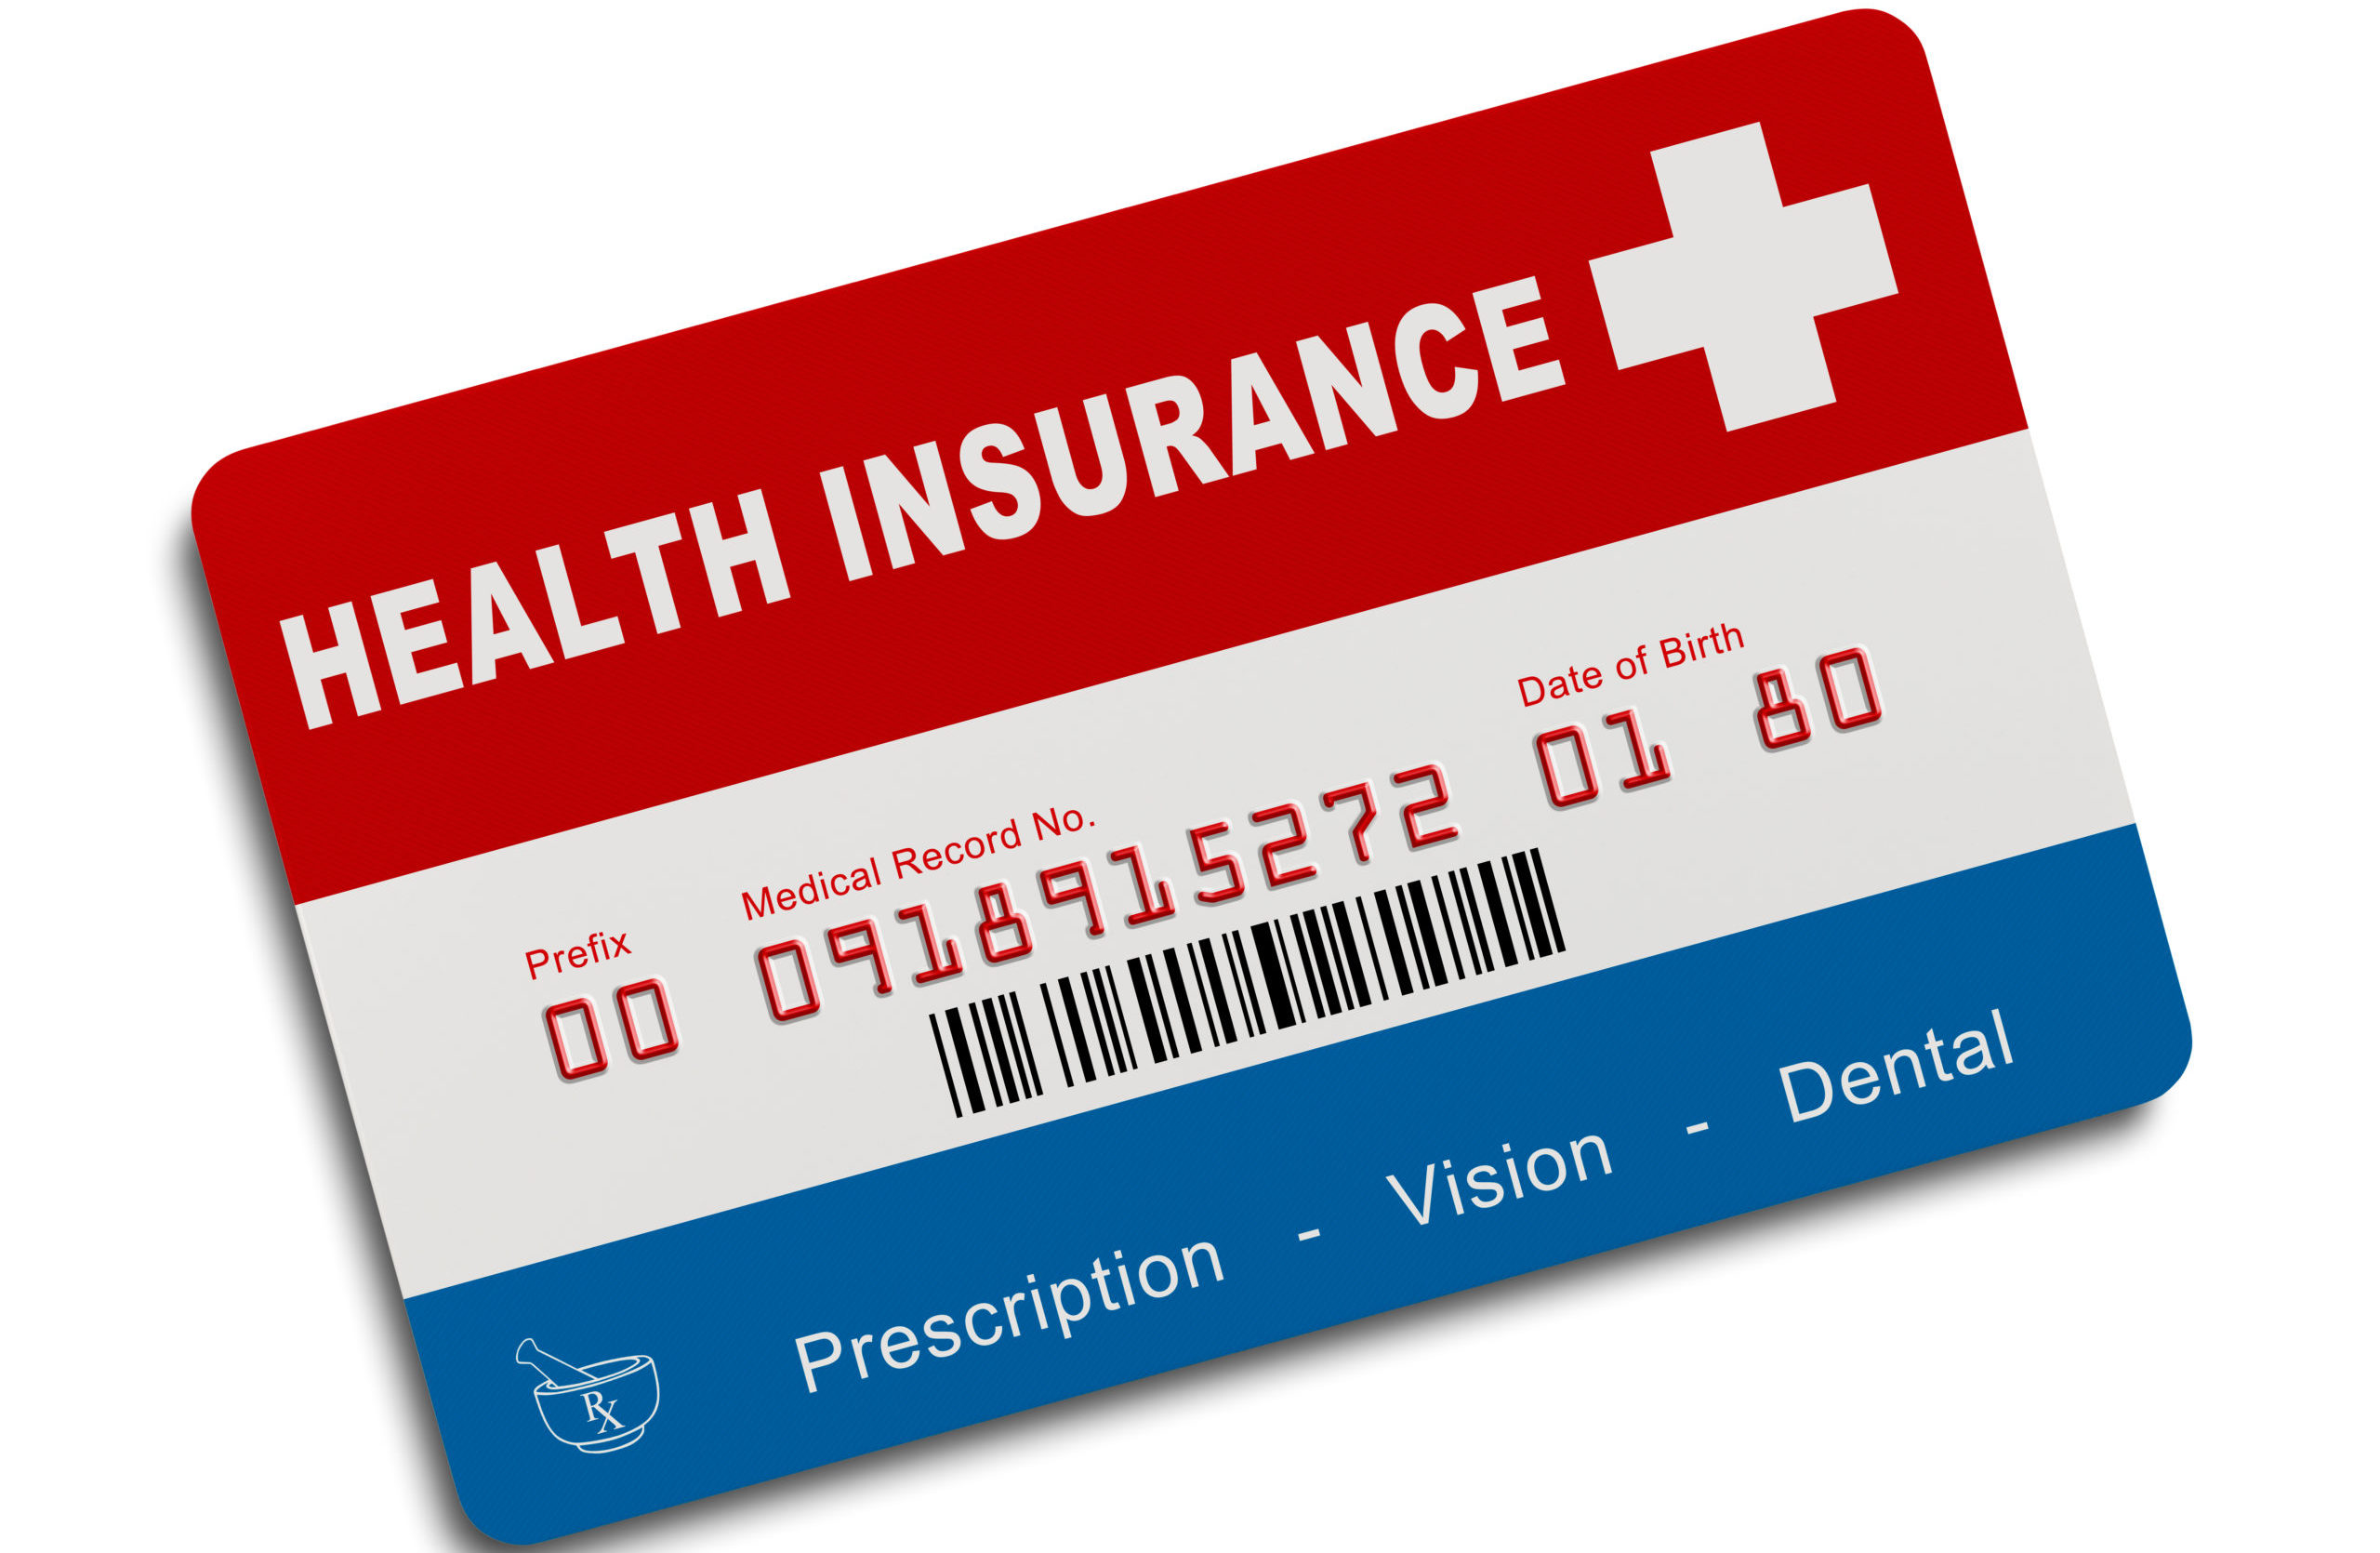 US Insurance Card